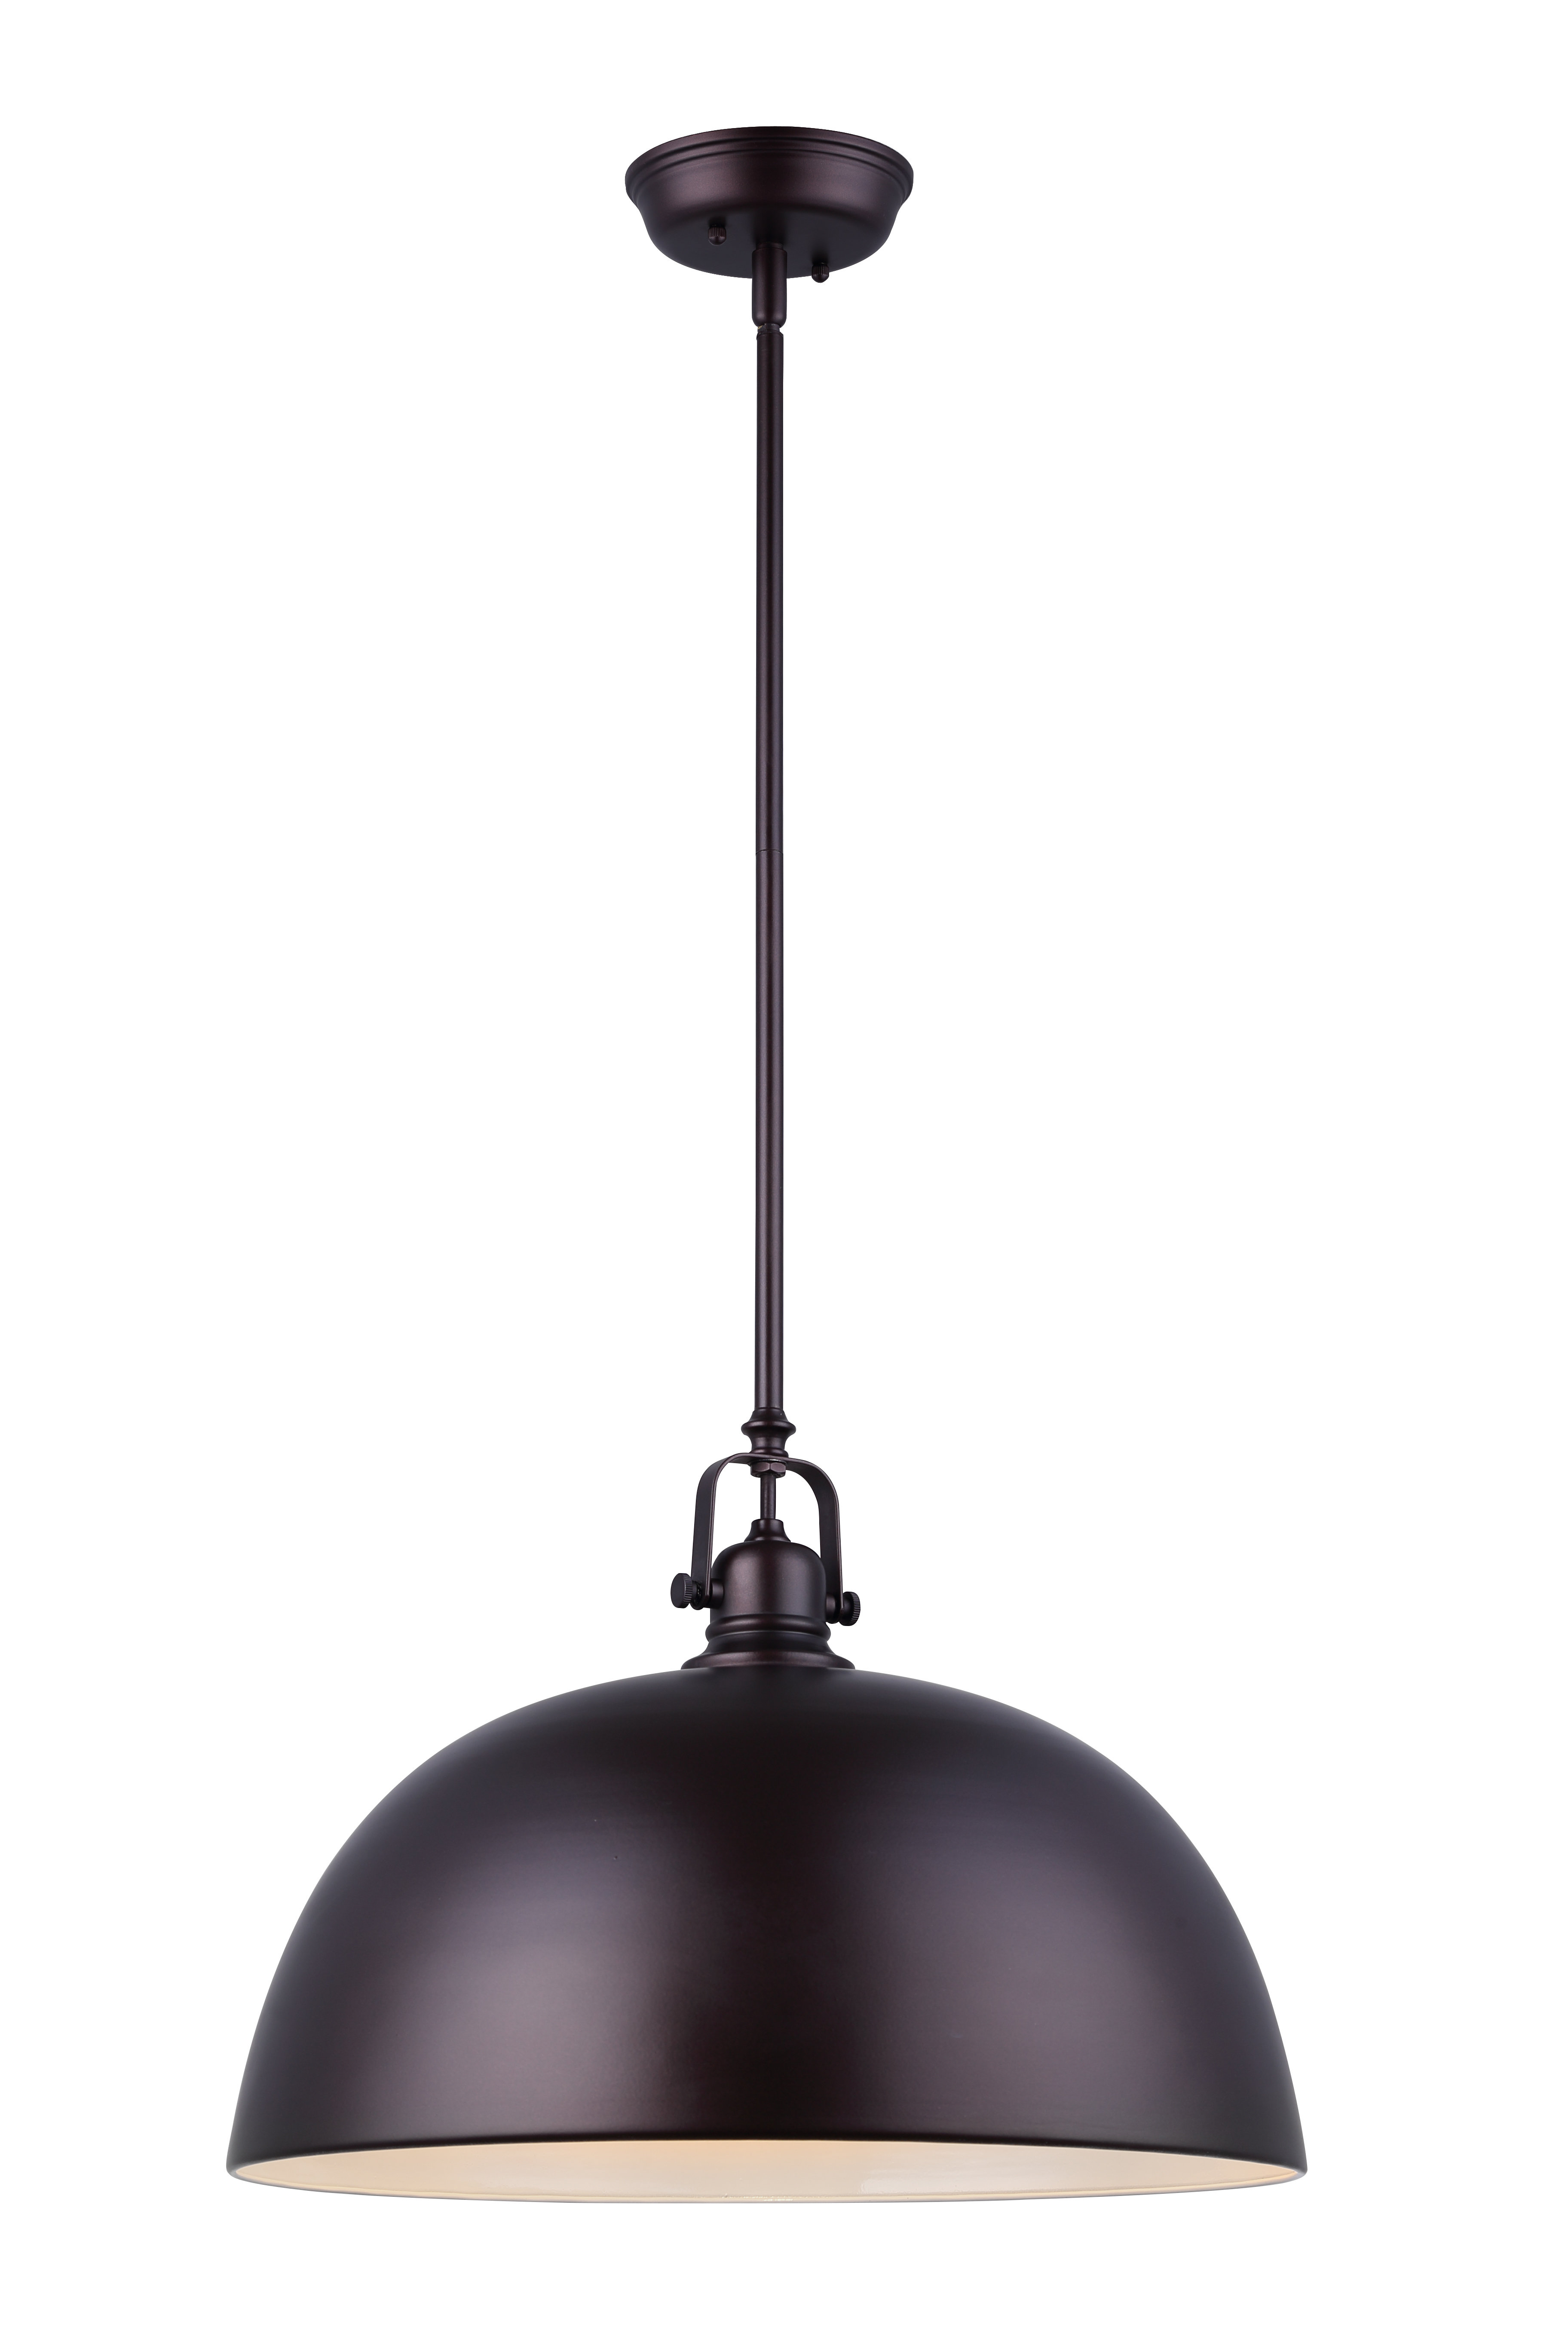 Southlake 1 Light Single Dome Pendant Within Most Recently Released Houon 1 Light Cone Bell Pendants (View 16 of 20)